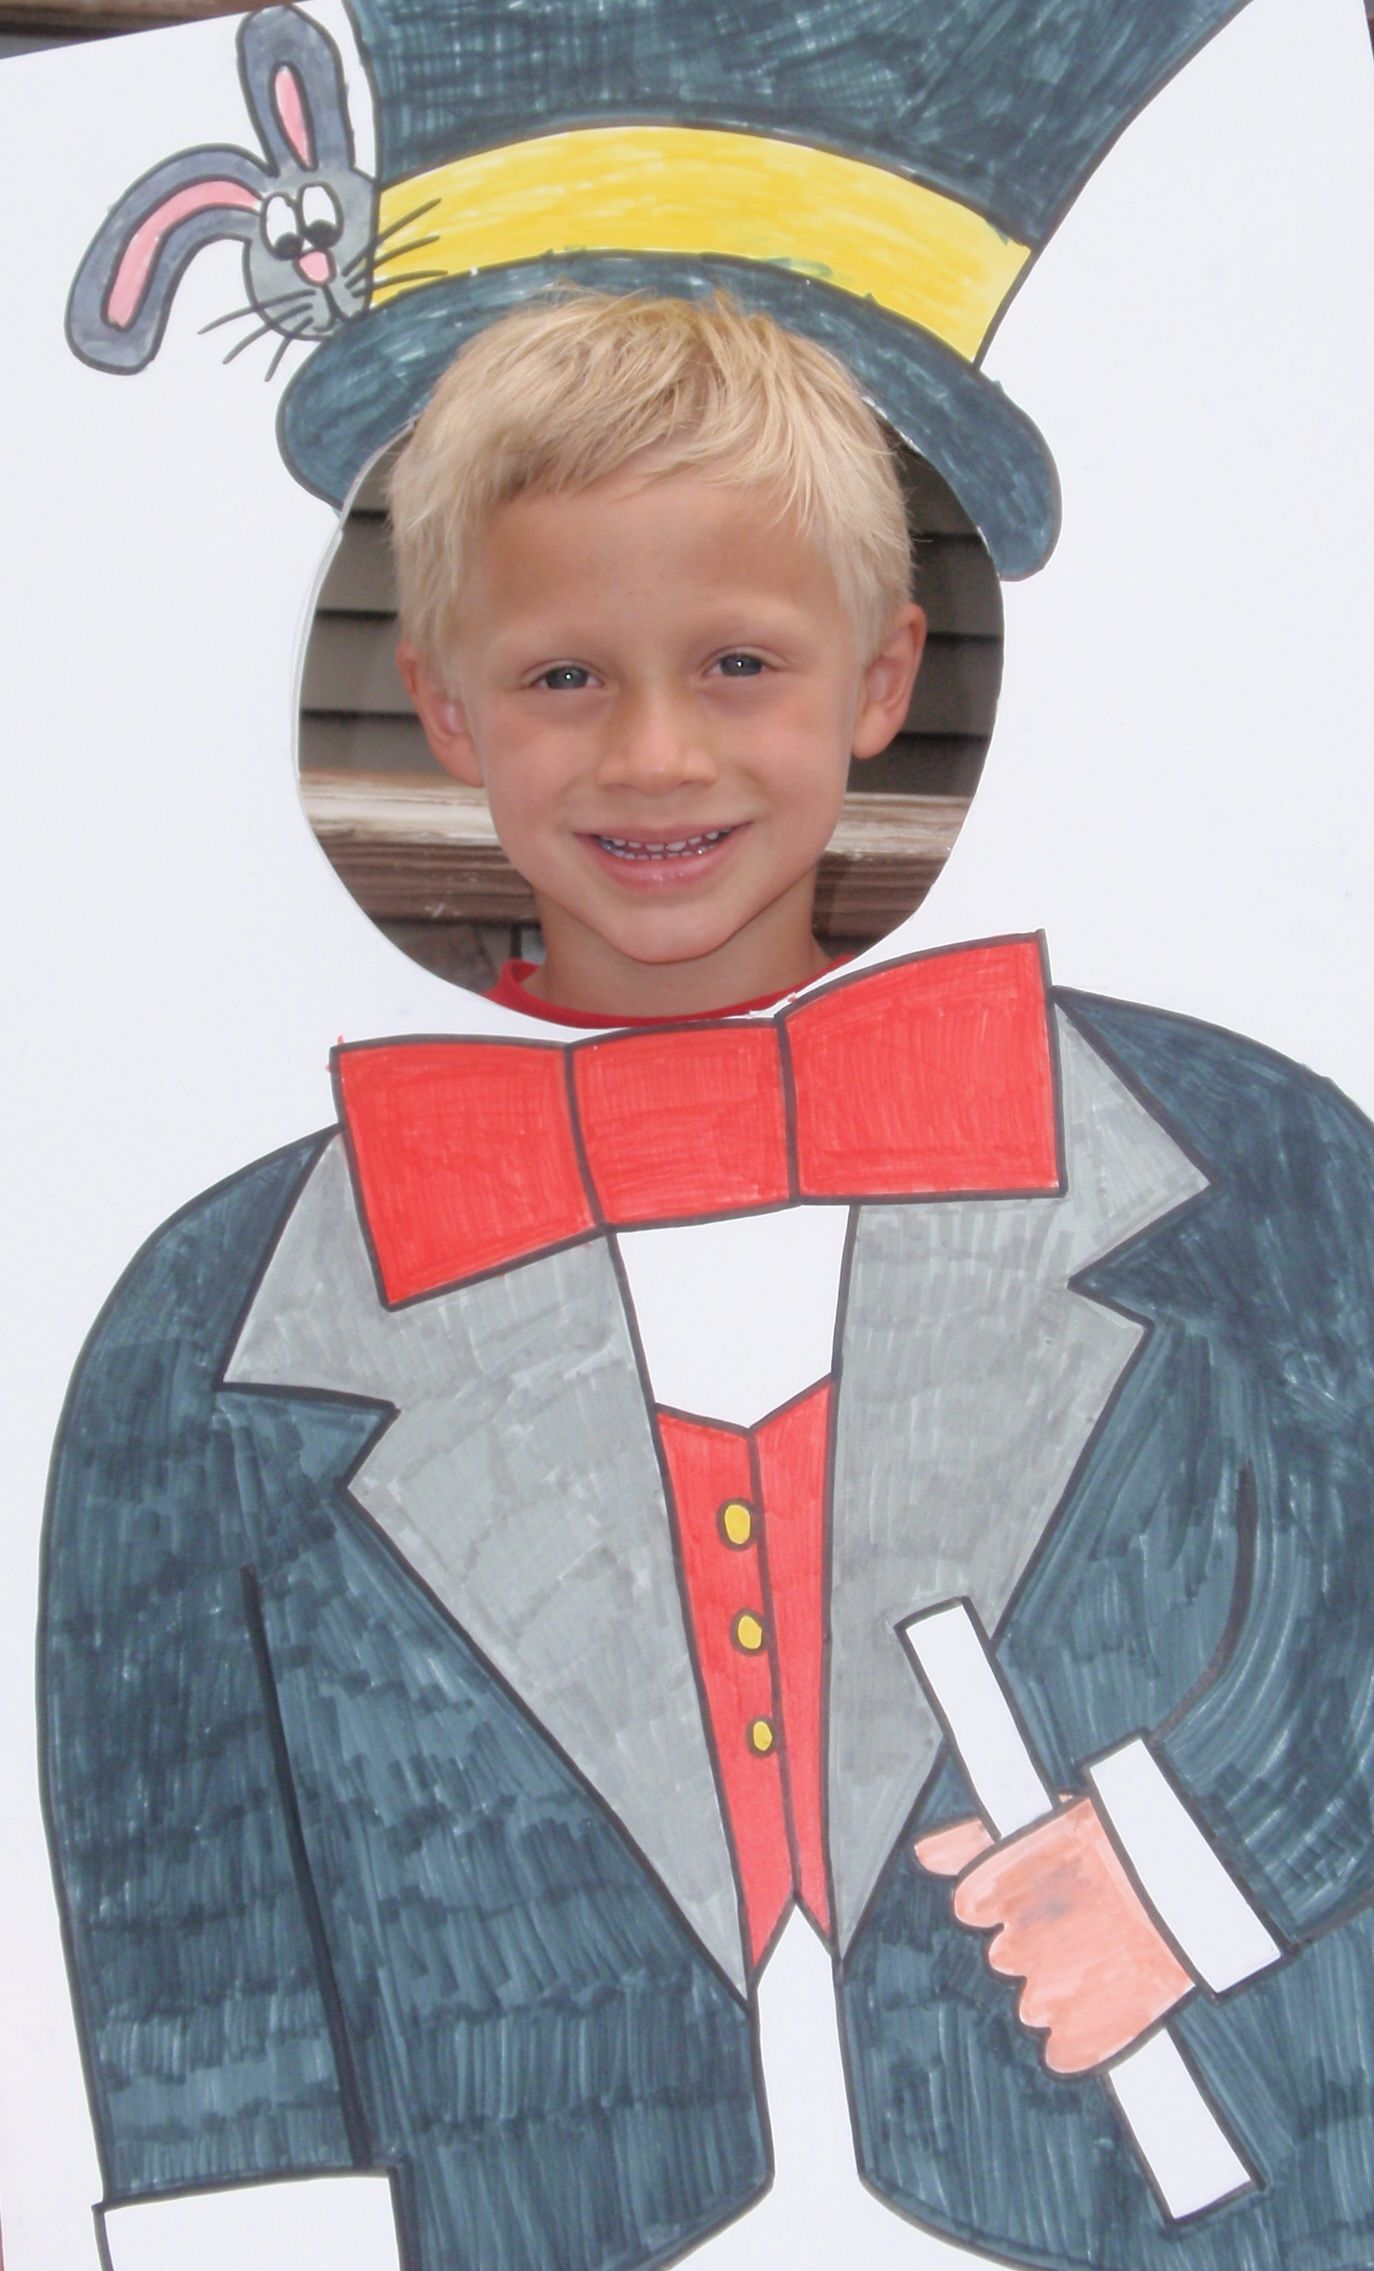 Super fun birthday party idea. Create your own photo cut outs and have kids pose for pics. The kids have a great time hamming it up and the pictures make super thank you card inserts. Just be sure to check TY envelope size before making prints